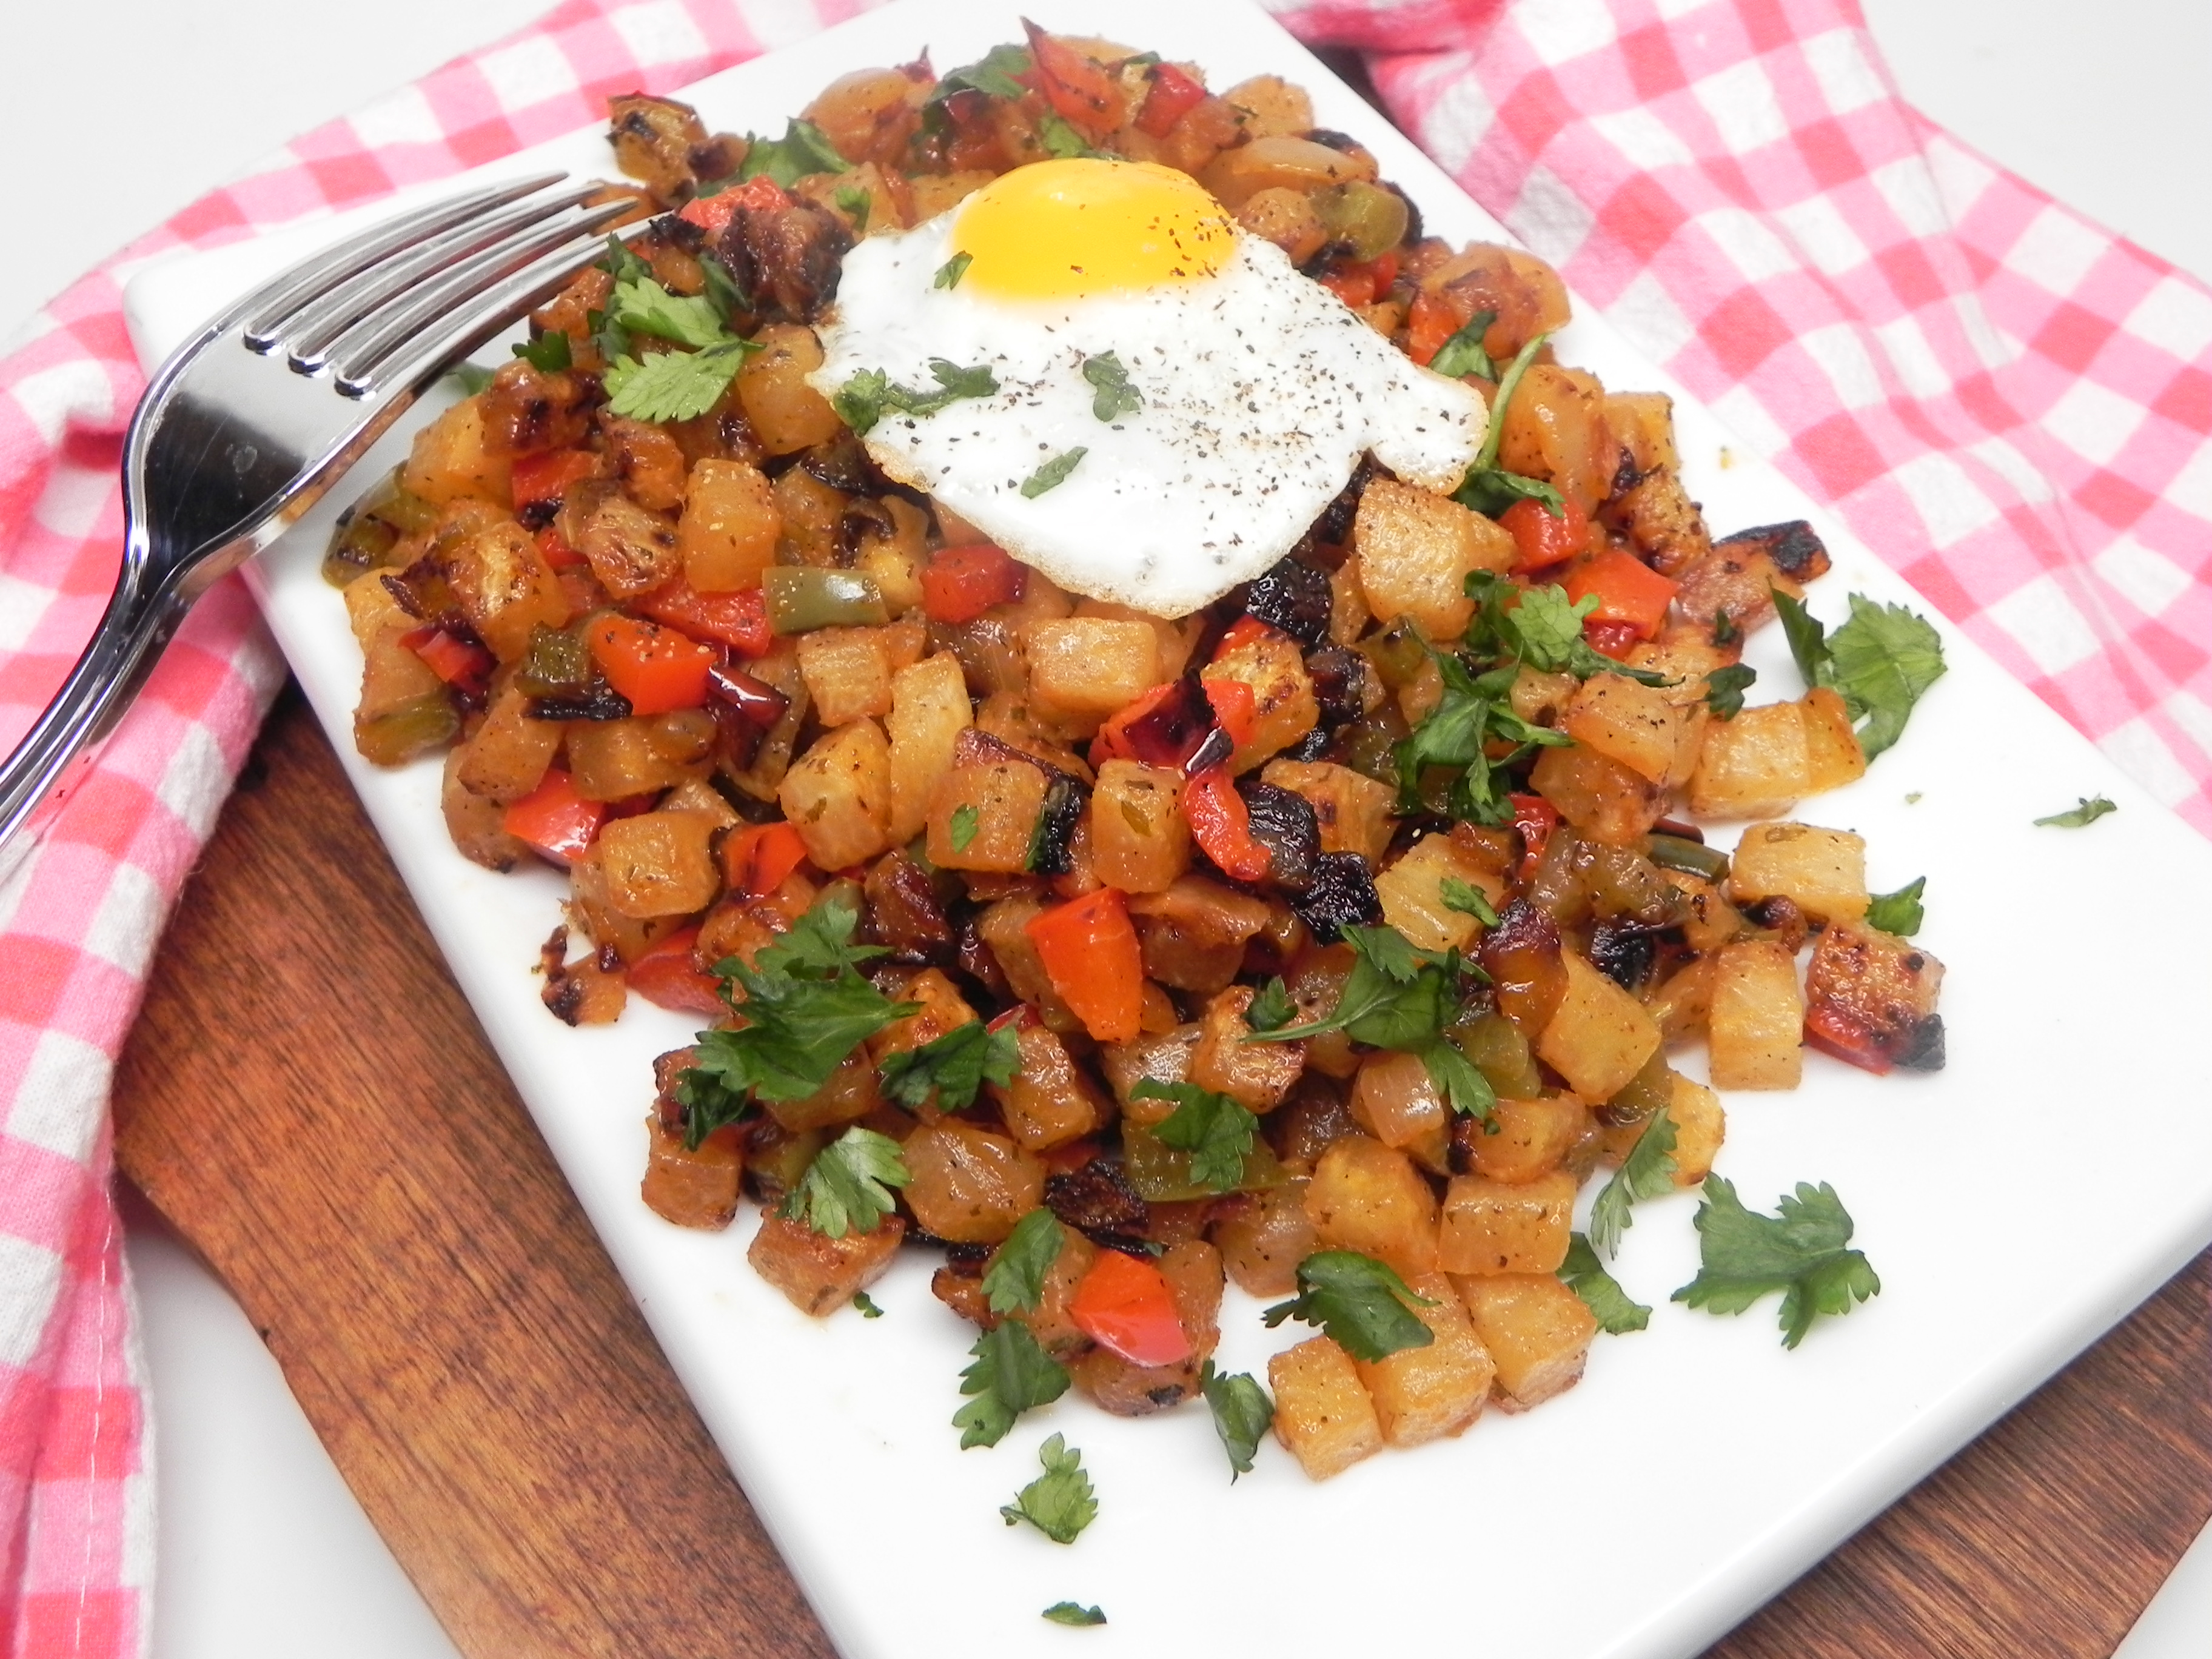 Jicama Hash Browns O'Brien